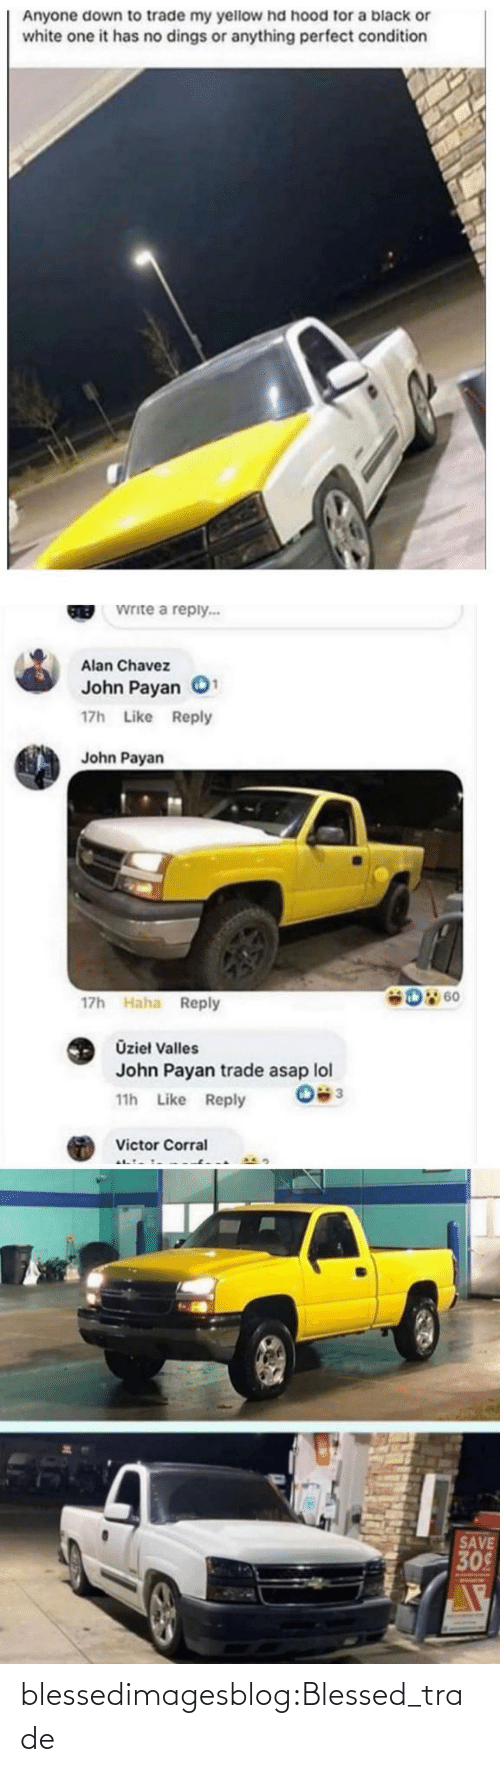 Hood: Anyone down to trade my yellow hd hood for a black or  white one it has no dings or anything perfect condition  Write a reply...  GREB  Alan Chavez  John Payan  17h Like Reply  John Payan  D 60  17h Haha Reply  Üzieł Valles  John Payan trade asap lol  11h Like Reply  Victor Corral  SAVE  309 blessedimagesblog:Blessed_trade